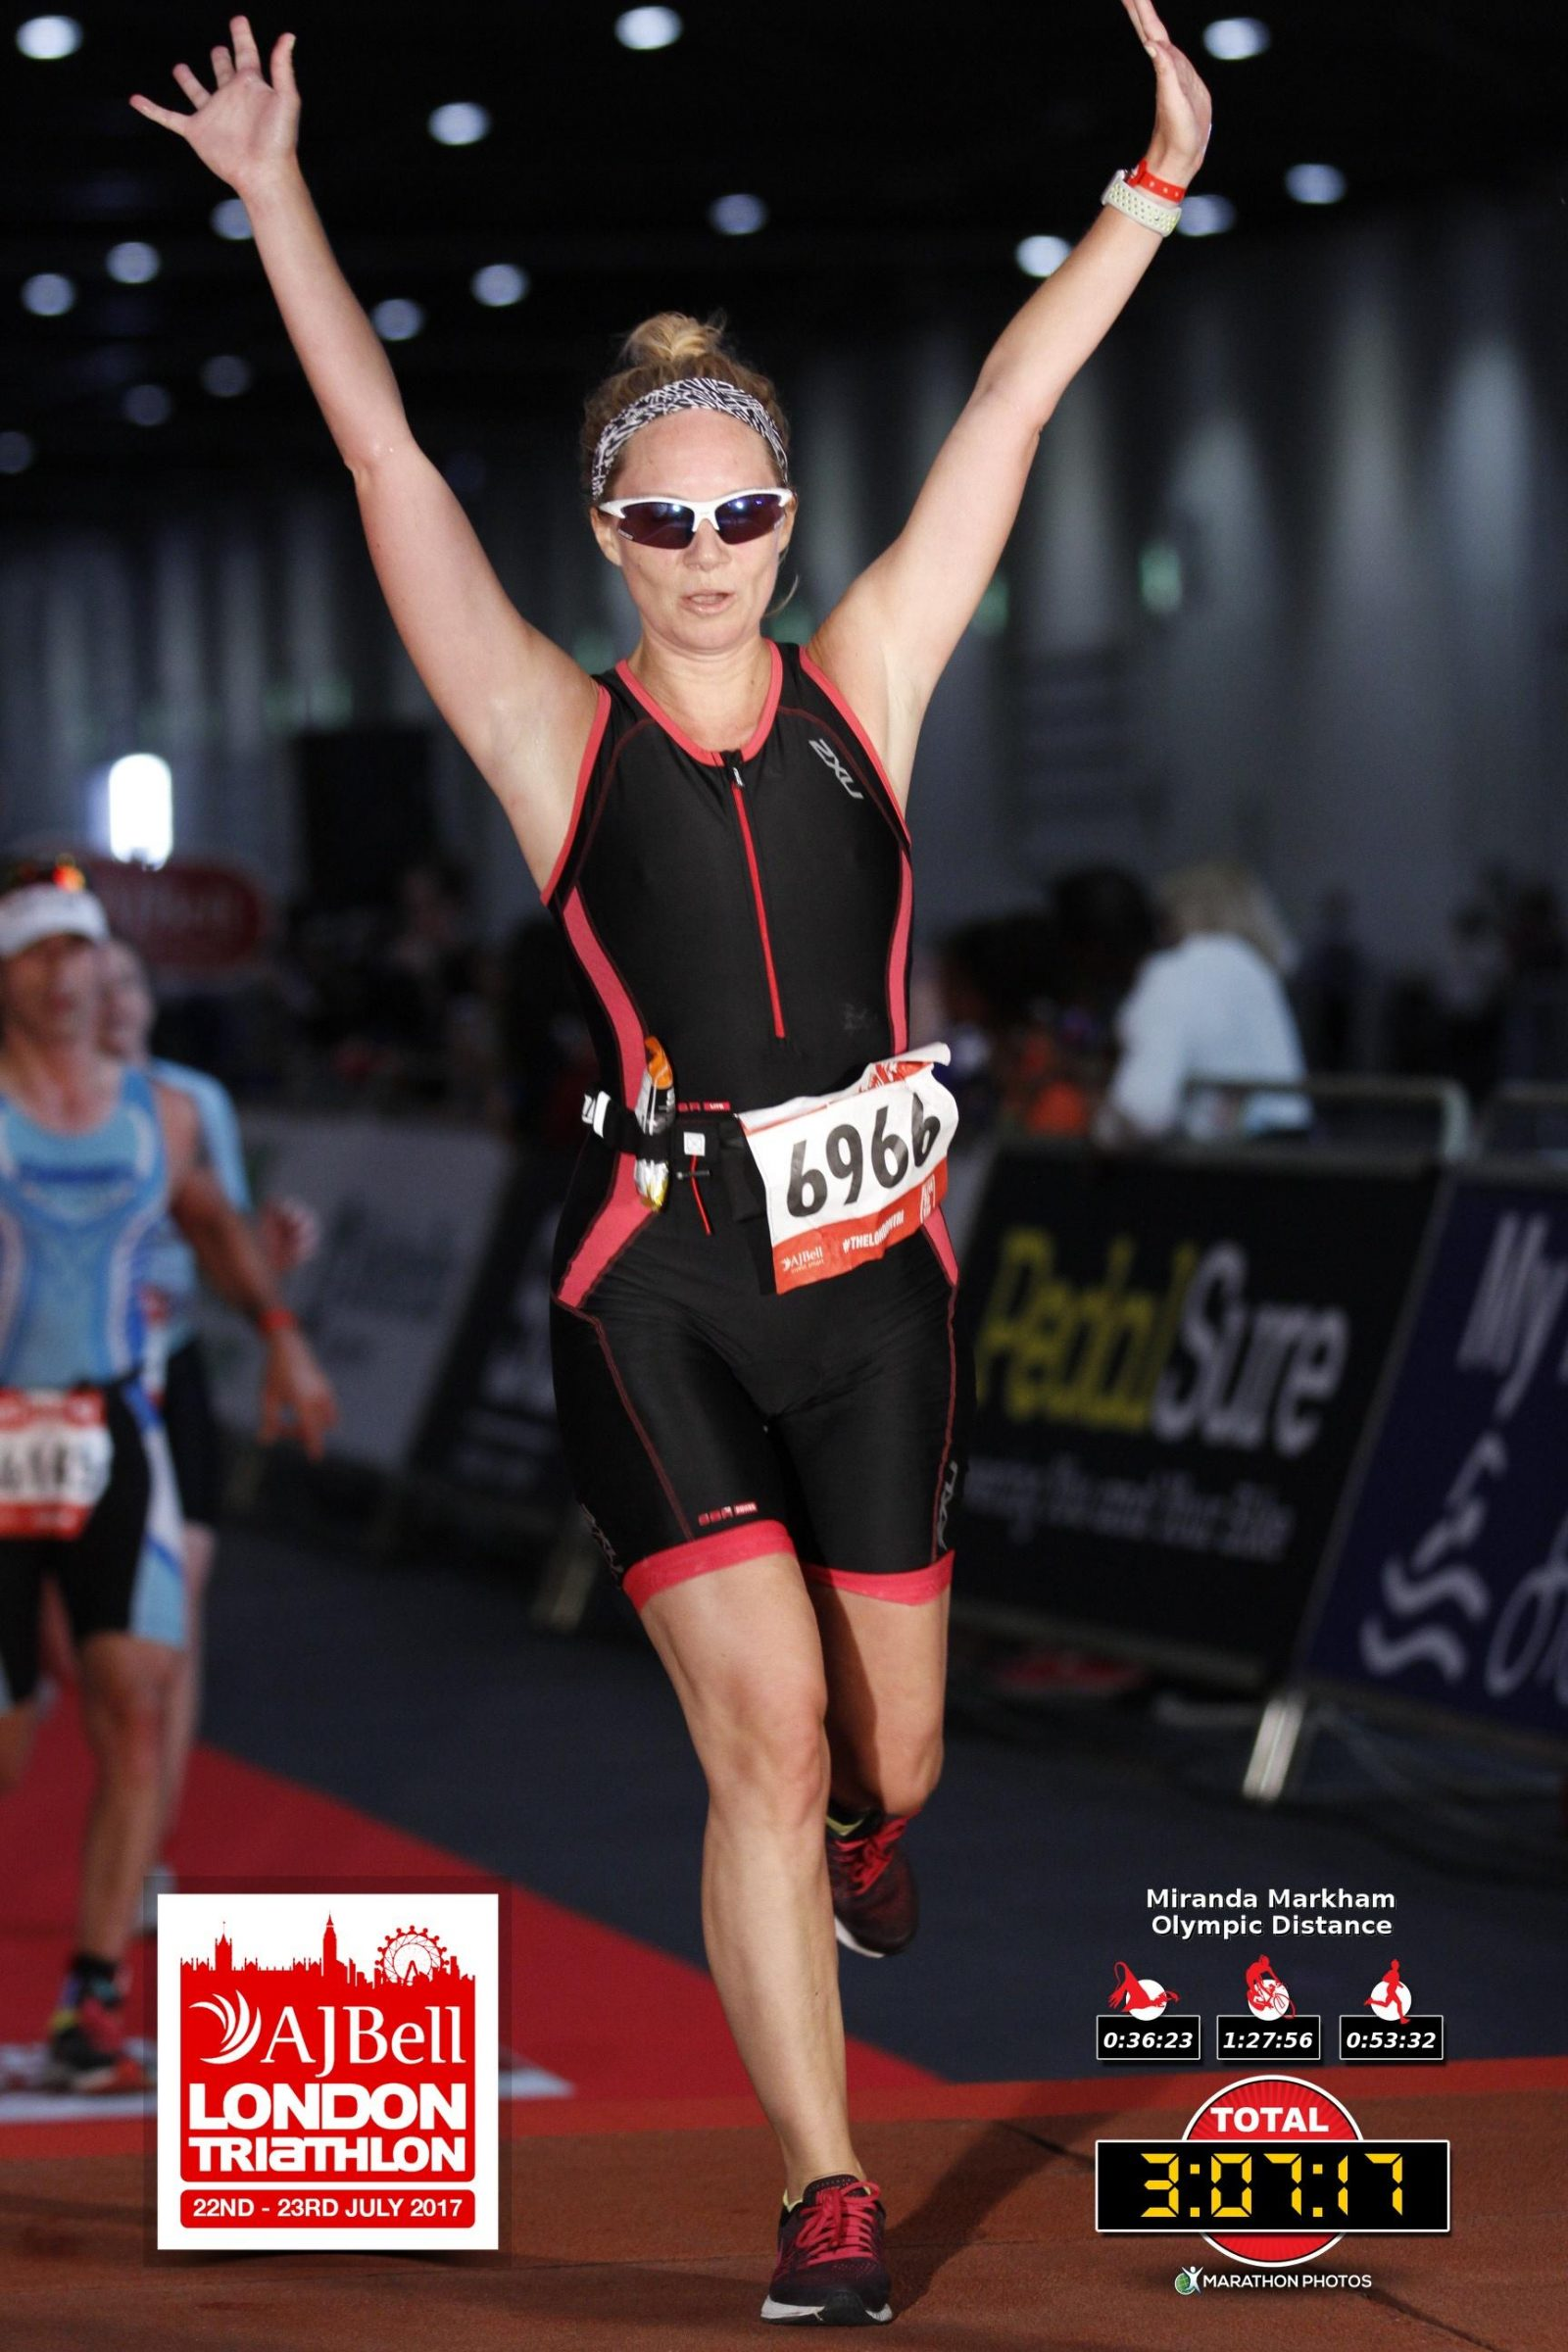 The London Triathlon finish line